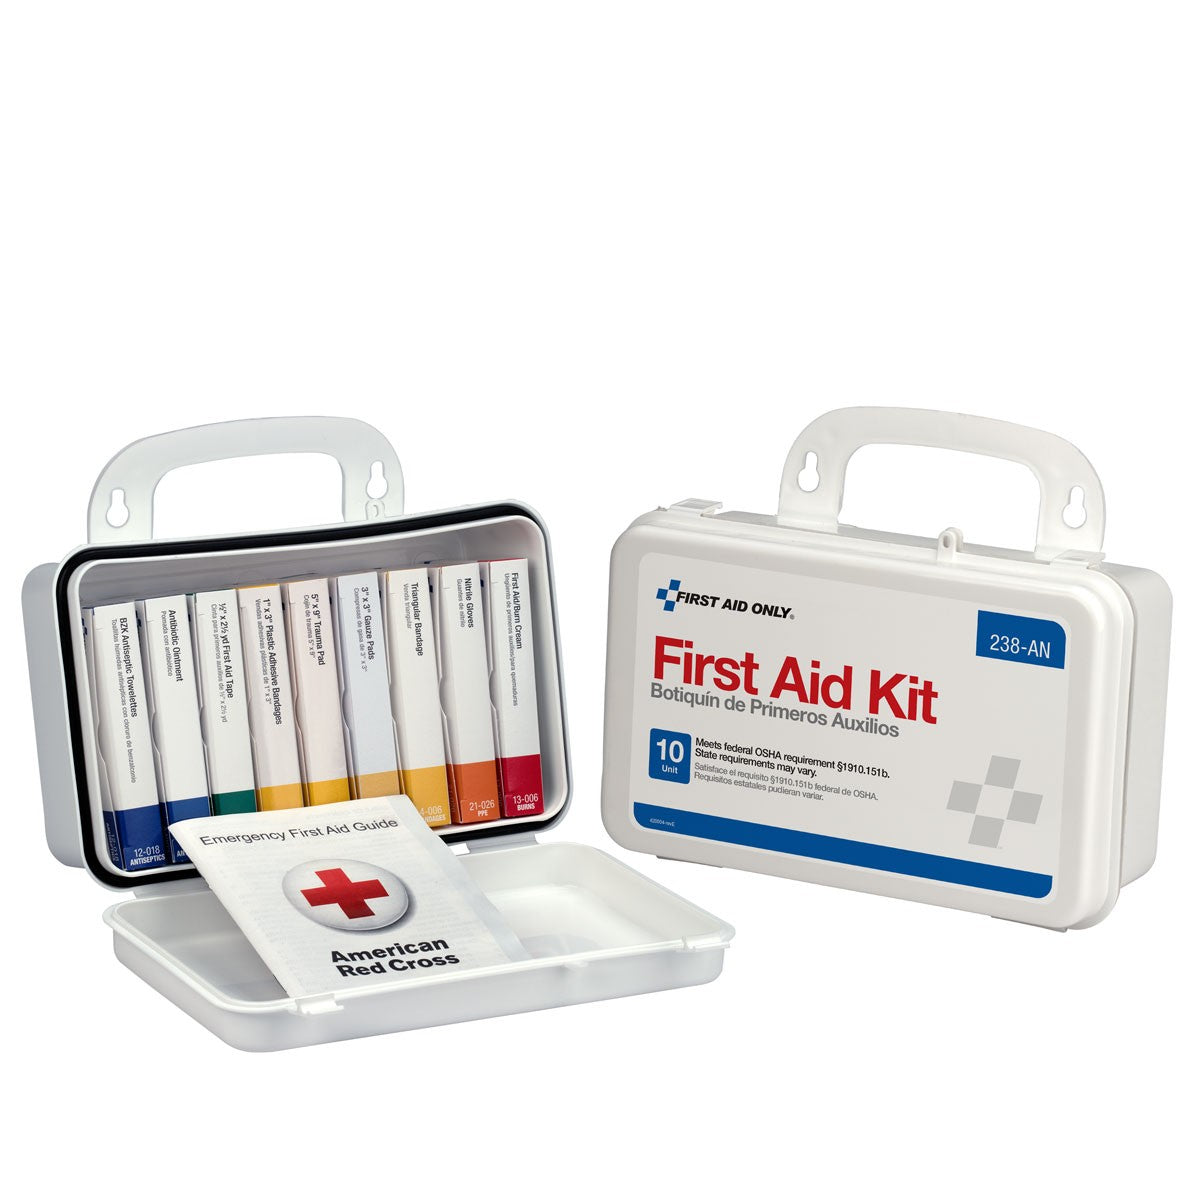 10 Unit First Aid Kit, Plastic Case - BS-FAK-238-AN-1-FM